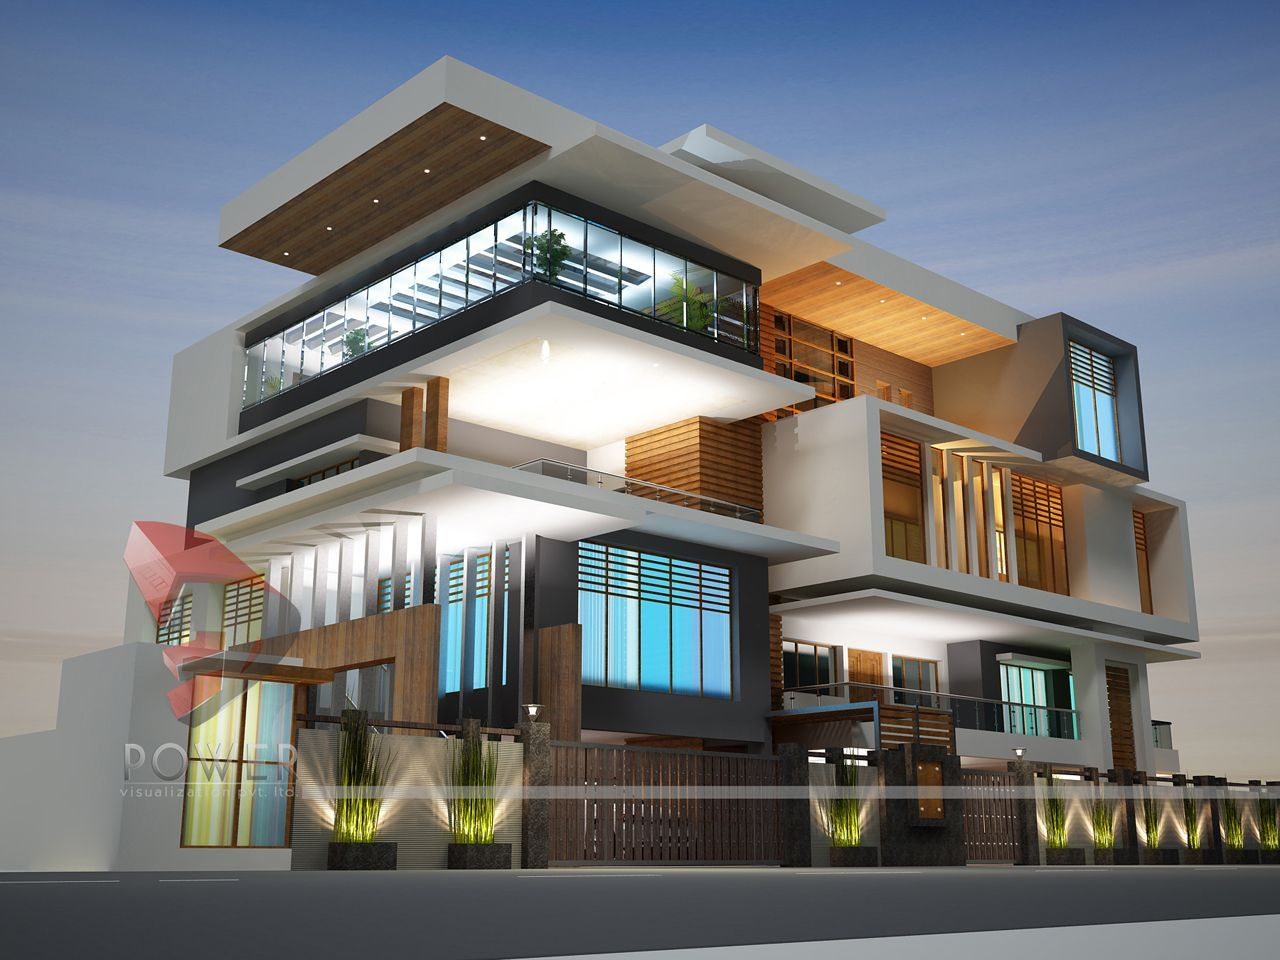 Modern house design in india architecture india modern for Modern villa architecture design